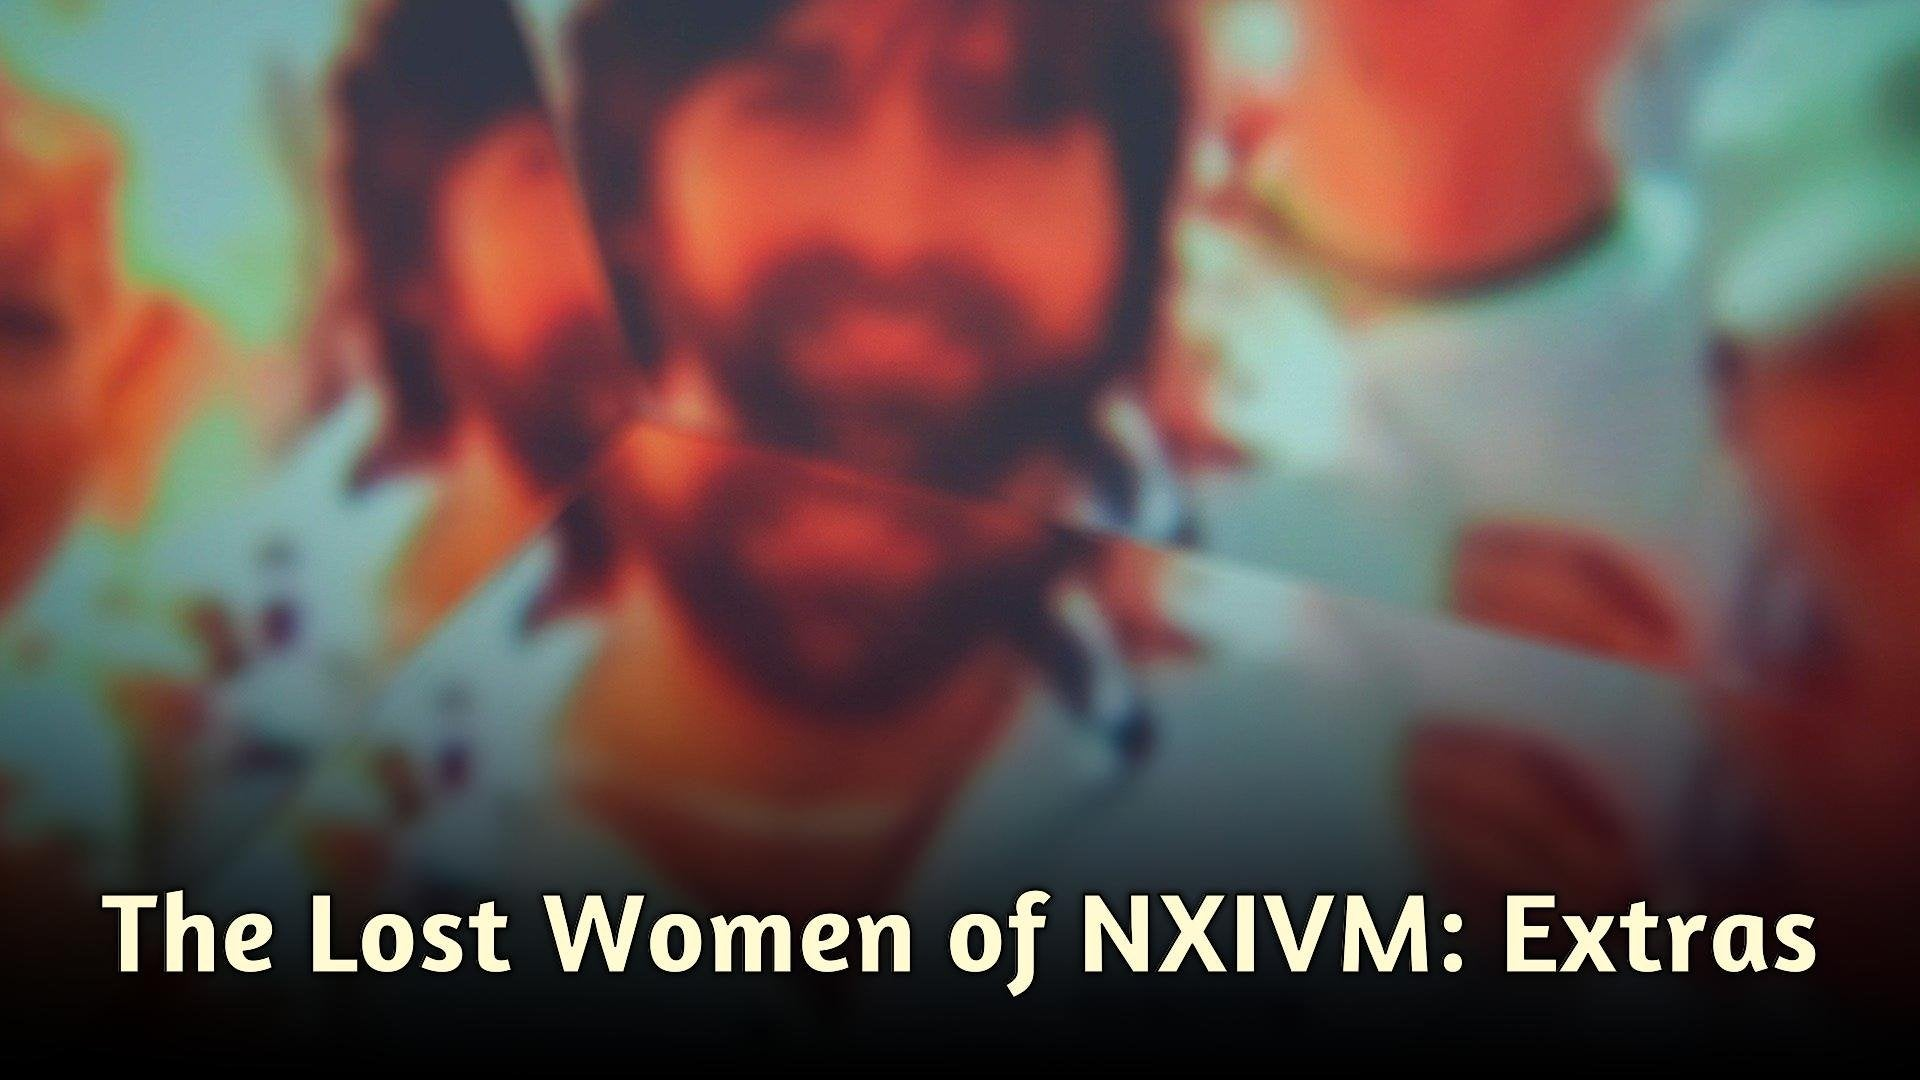 The Lost Women of NXIVM: Extras